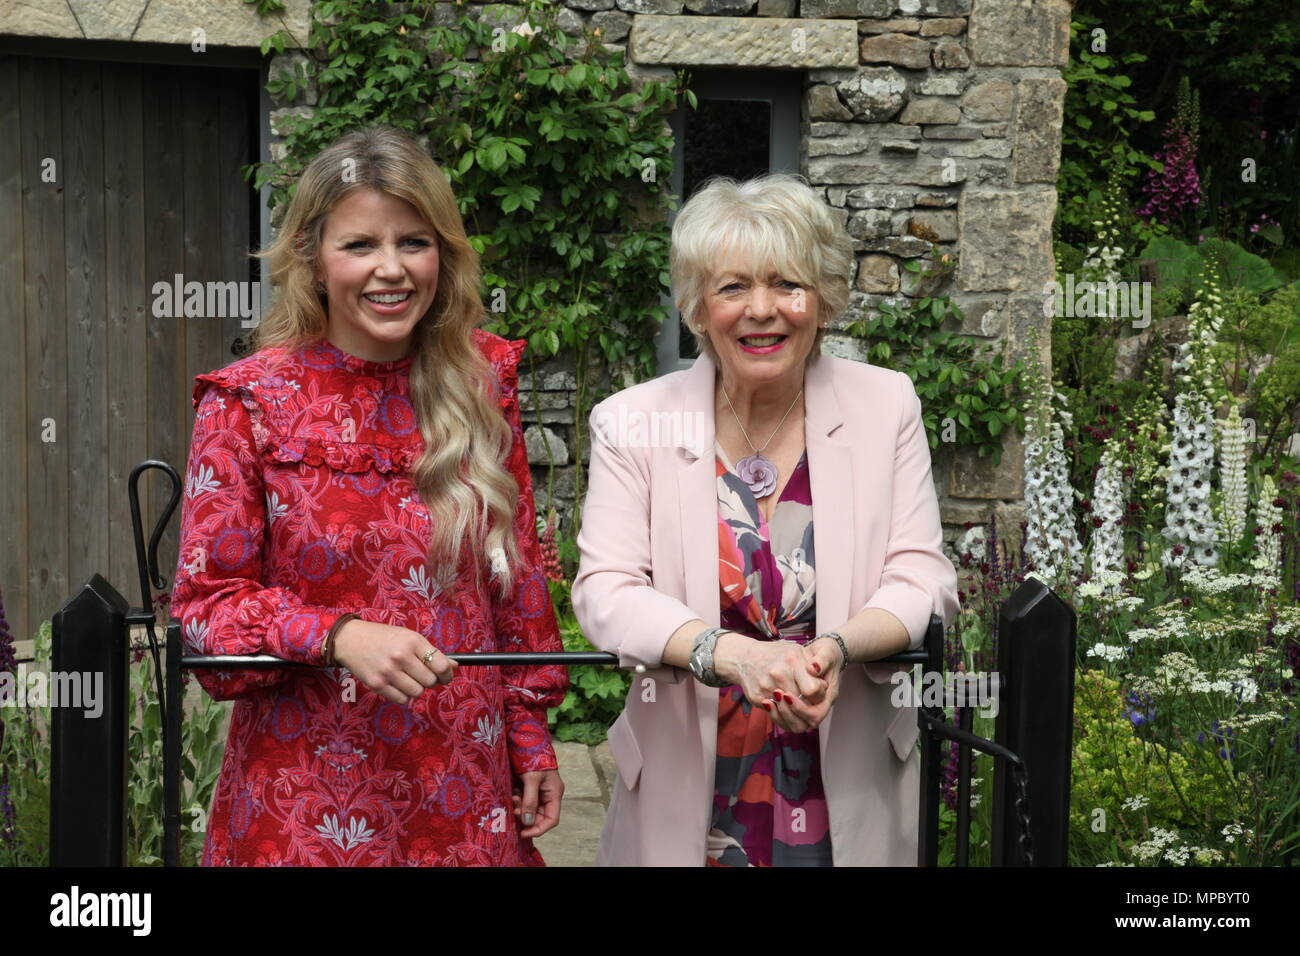 Chelsea, London, UK. 21st May, 2018. Chelsea, London, UK. 21st May 2018. Ellie Harrison and Alison Steadman on the Welcome to Yorkshire garden at Chelsea Flower Show 2018, designed by Mark Gregory for Landformconsultants.co.uk Credit: Jenny Lilly/Alamy Live News - Stock Image